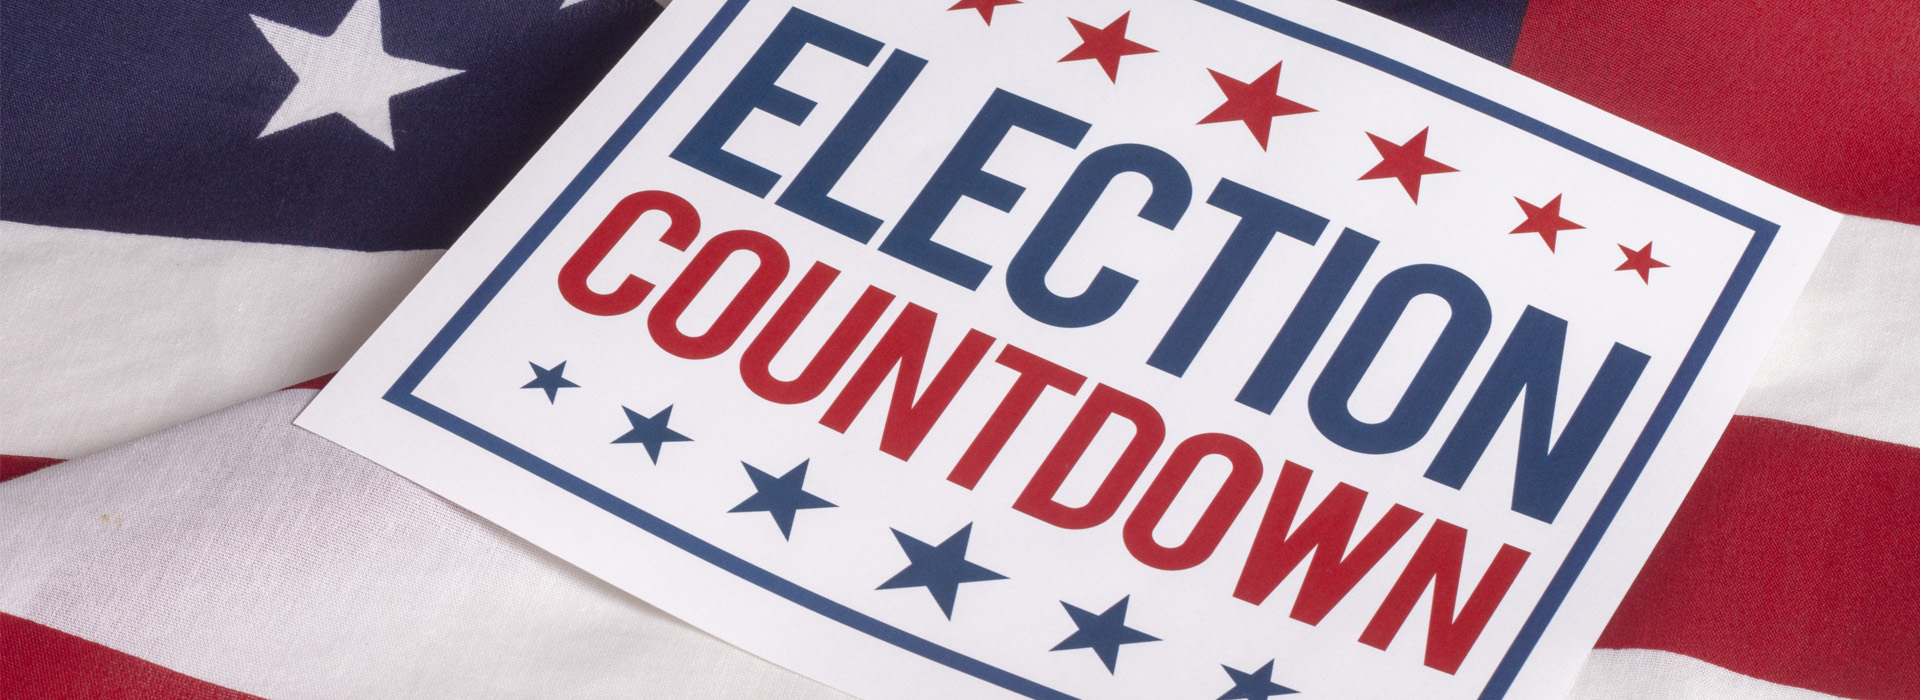 Image of a poster, poster reads: Election Countdown